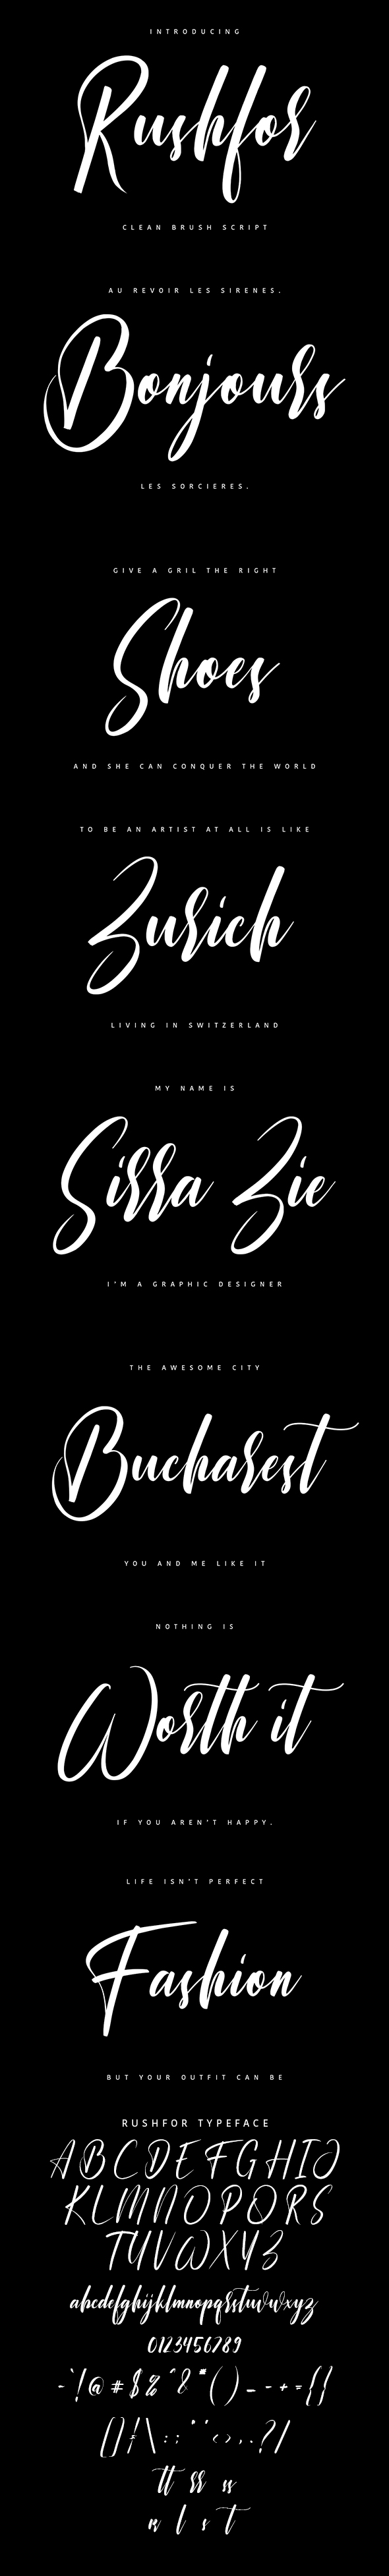 Cursive Handwritten Script Fonts from GraphicRiver (Page 3)